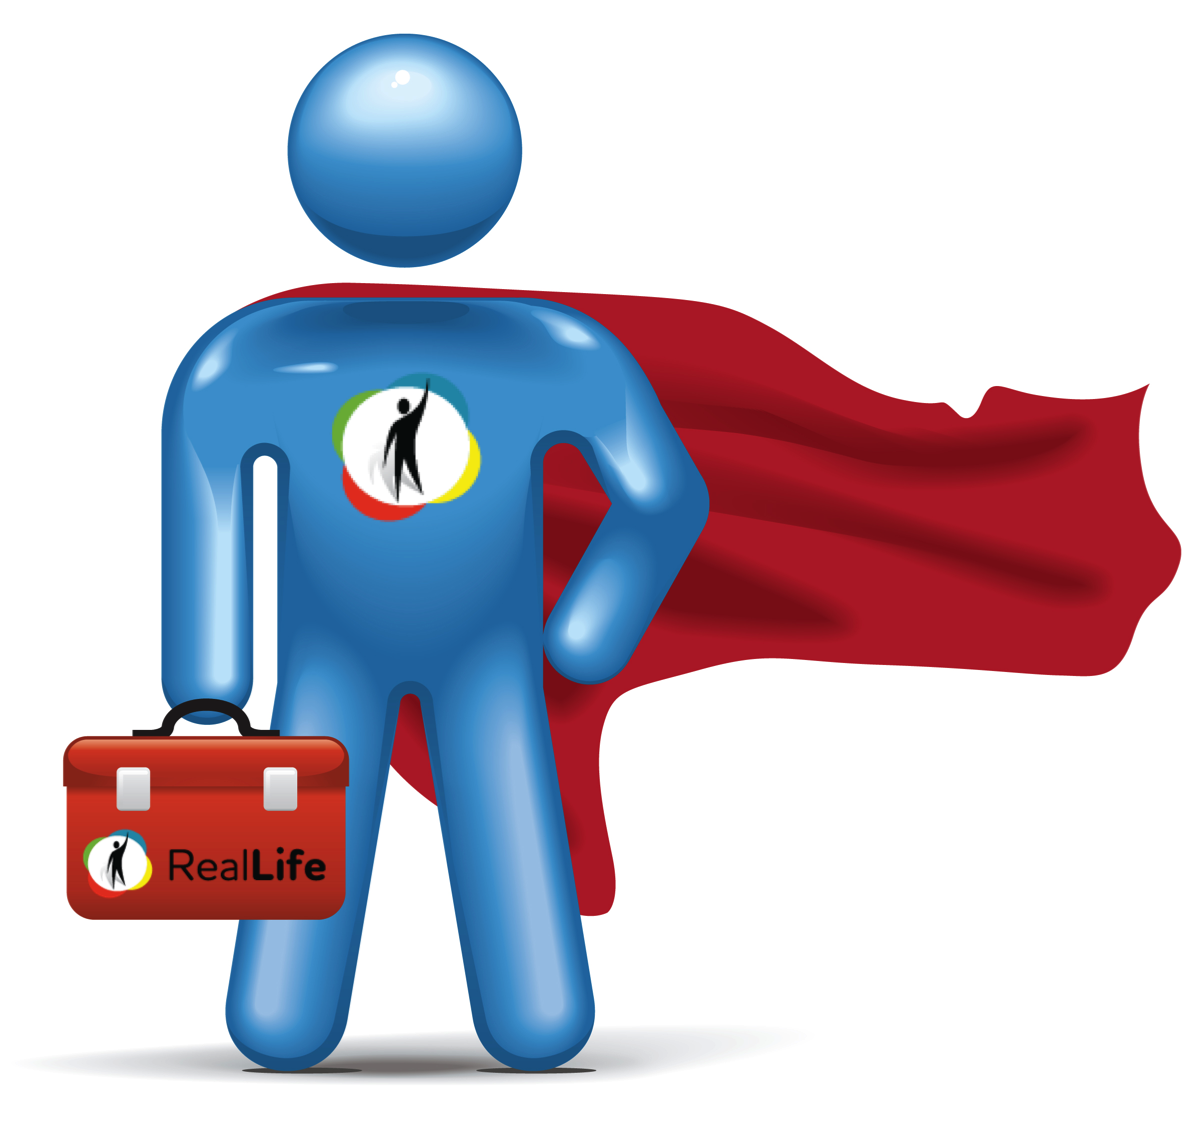 Your 1 Resource For: The RealLife Toolbox: Everything You Need To Revolutionize